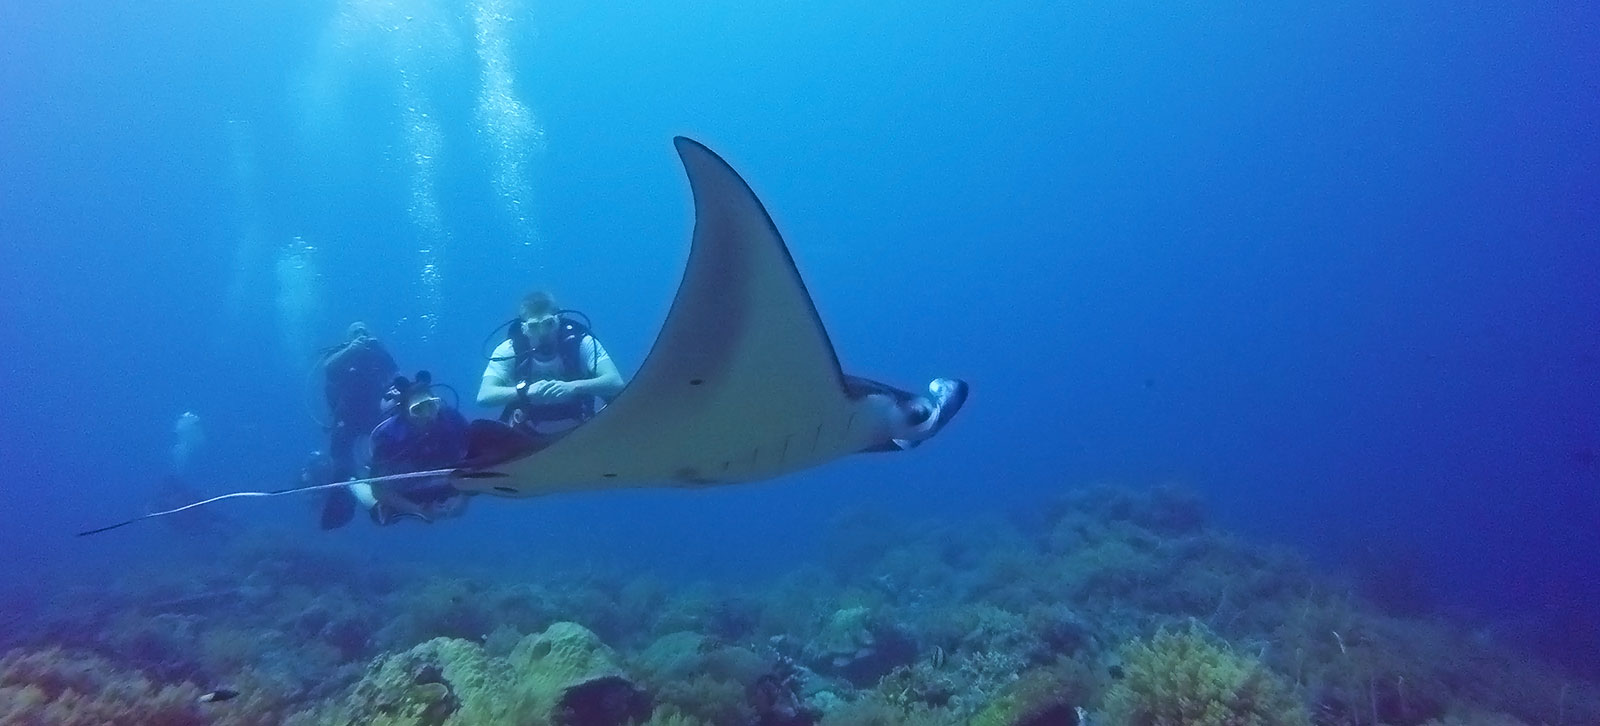 liveaboard scuba diving trips in the Philippines